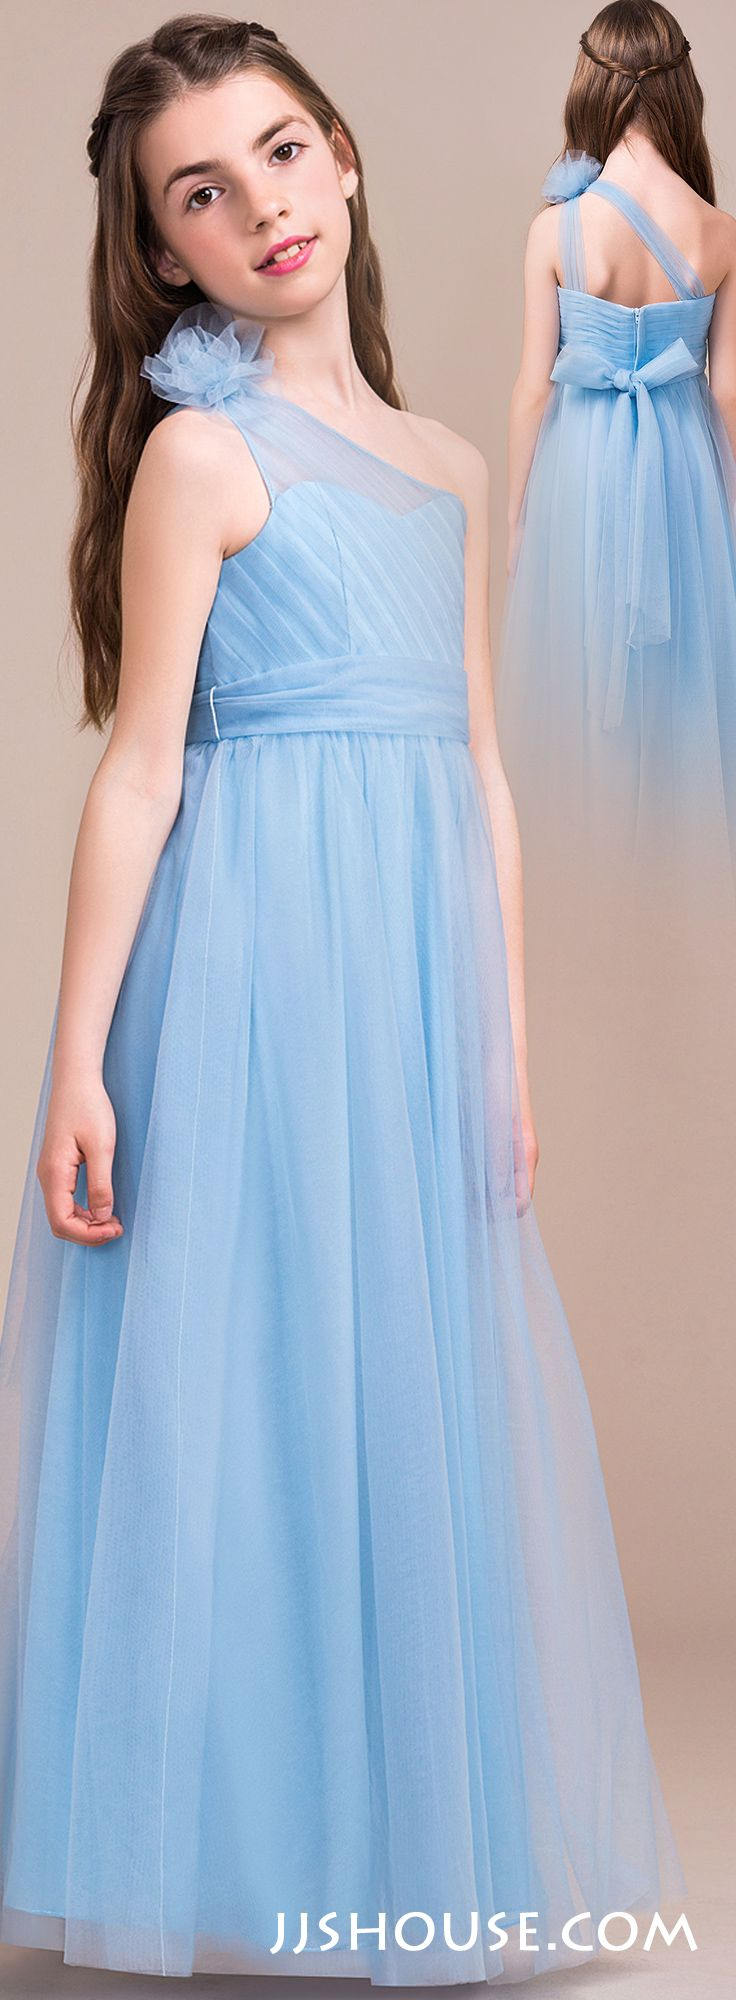 288 best images about teens on pinterest tulle dress shops and kpop a lineprincess one shoulder floor length tulle junior bridesmaid dress with ruffle flowers bows 009081121 ombrellifo Choice Image